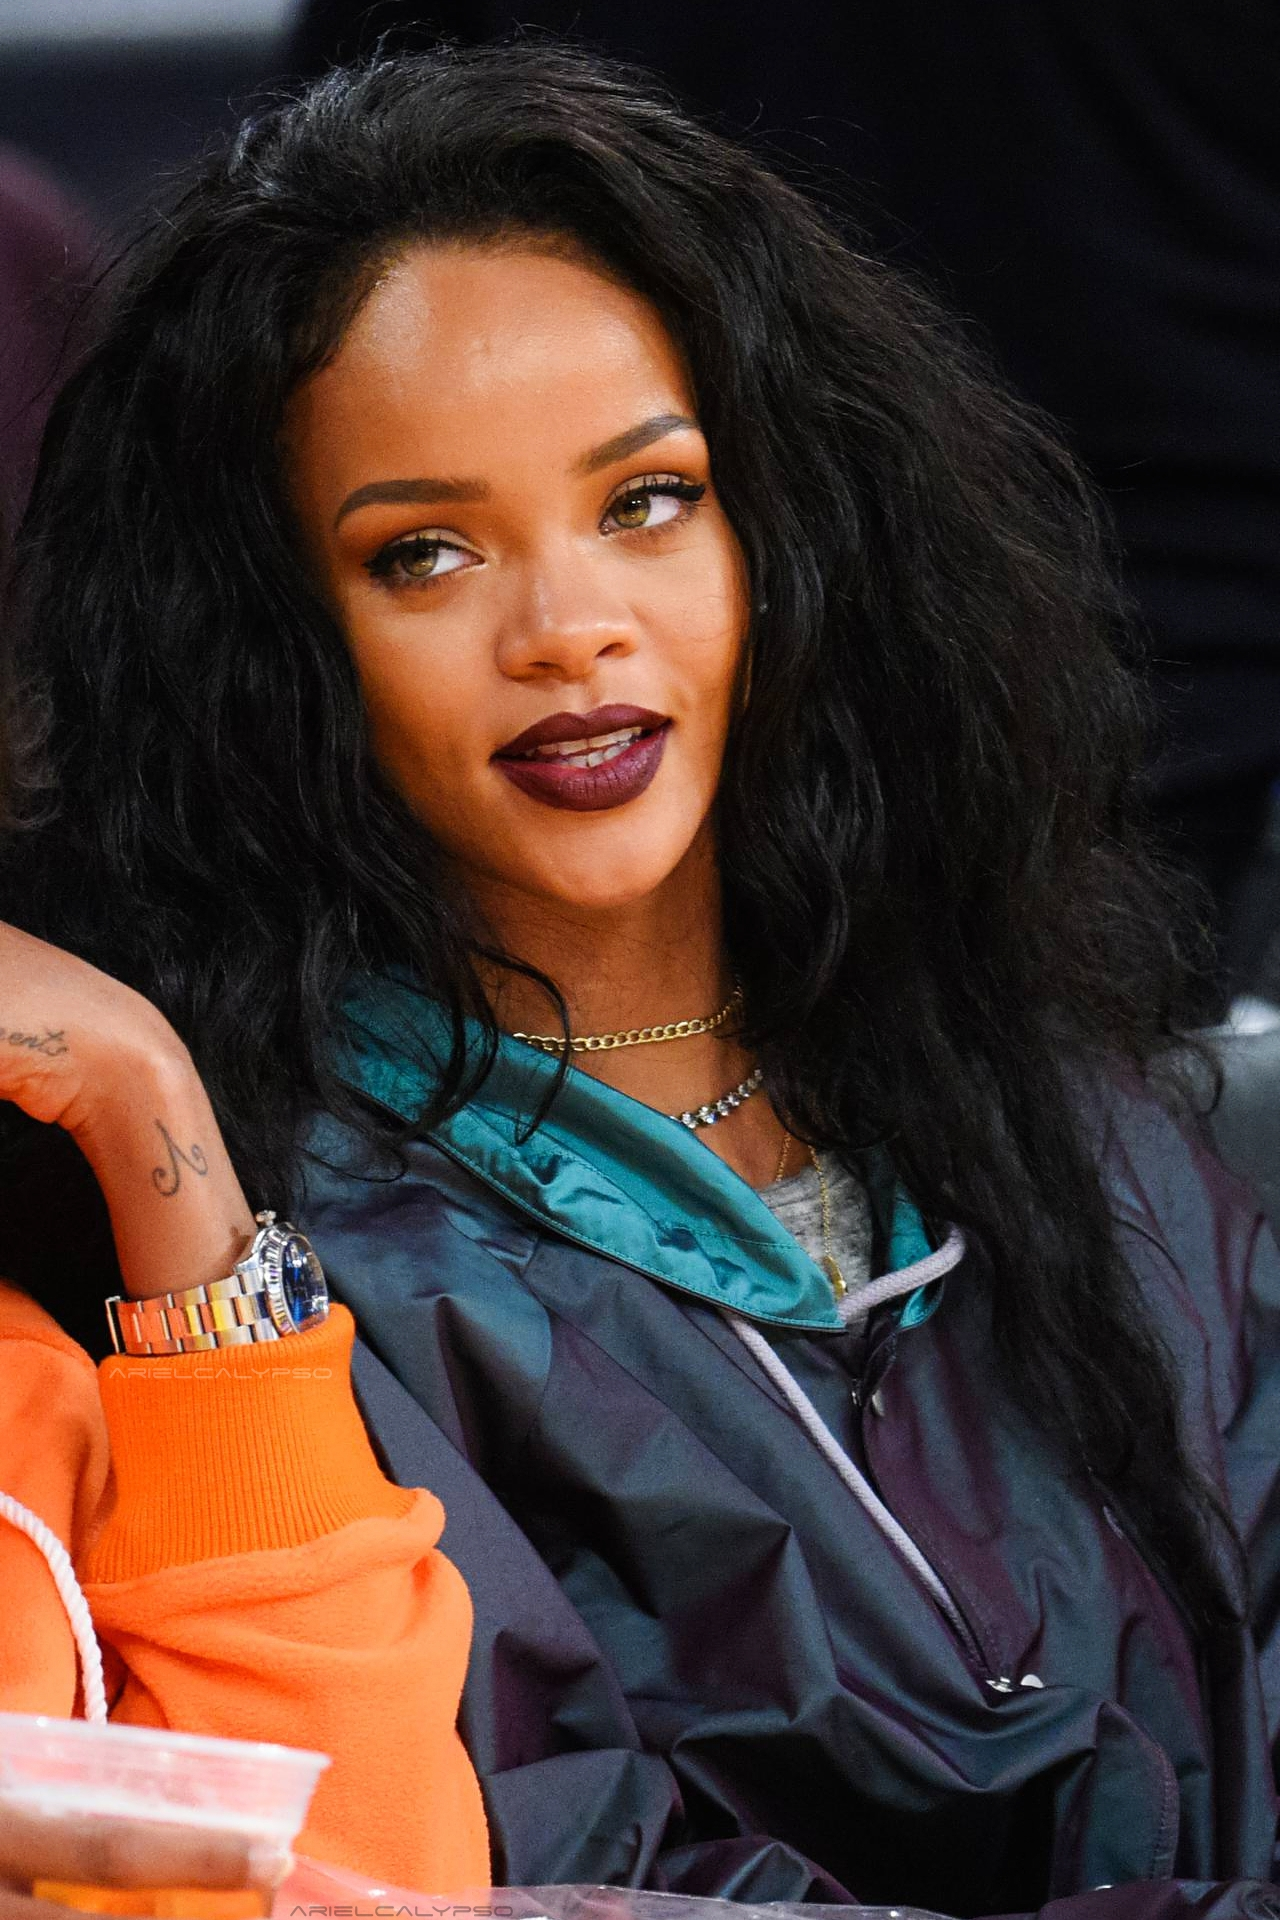 Basketball Rihanna game tumblr recommendations to wear for everyday in 2019